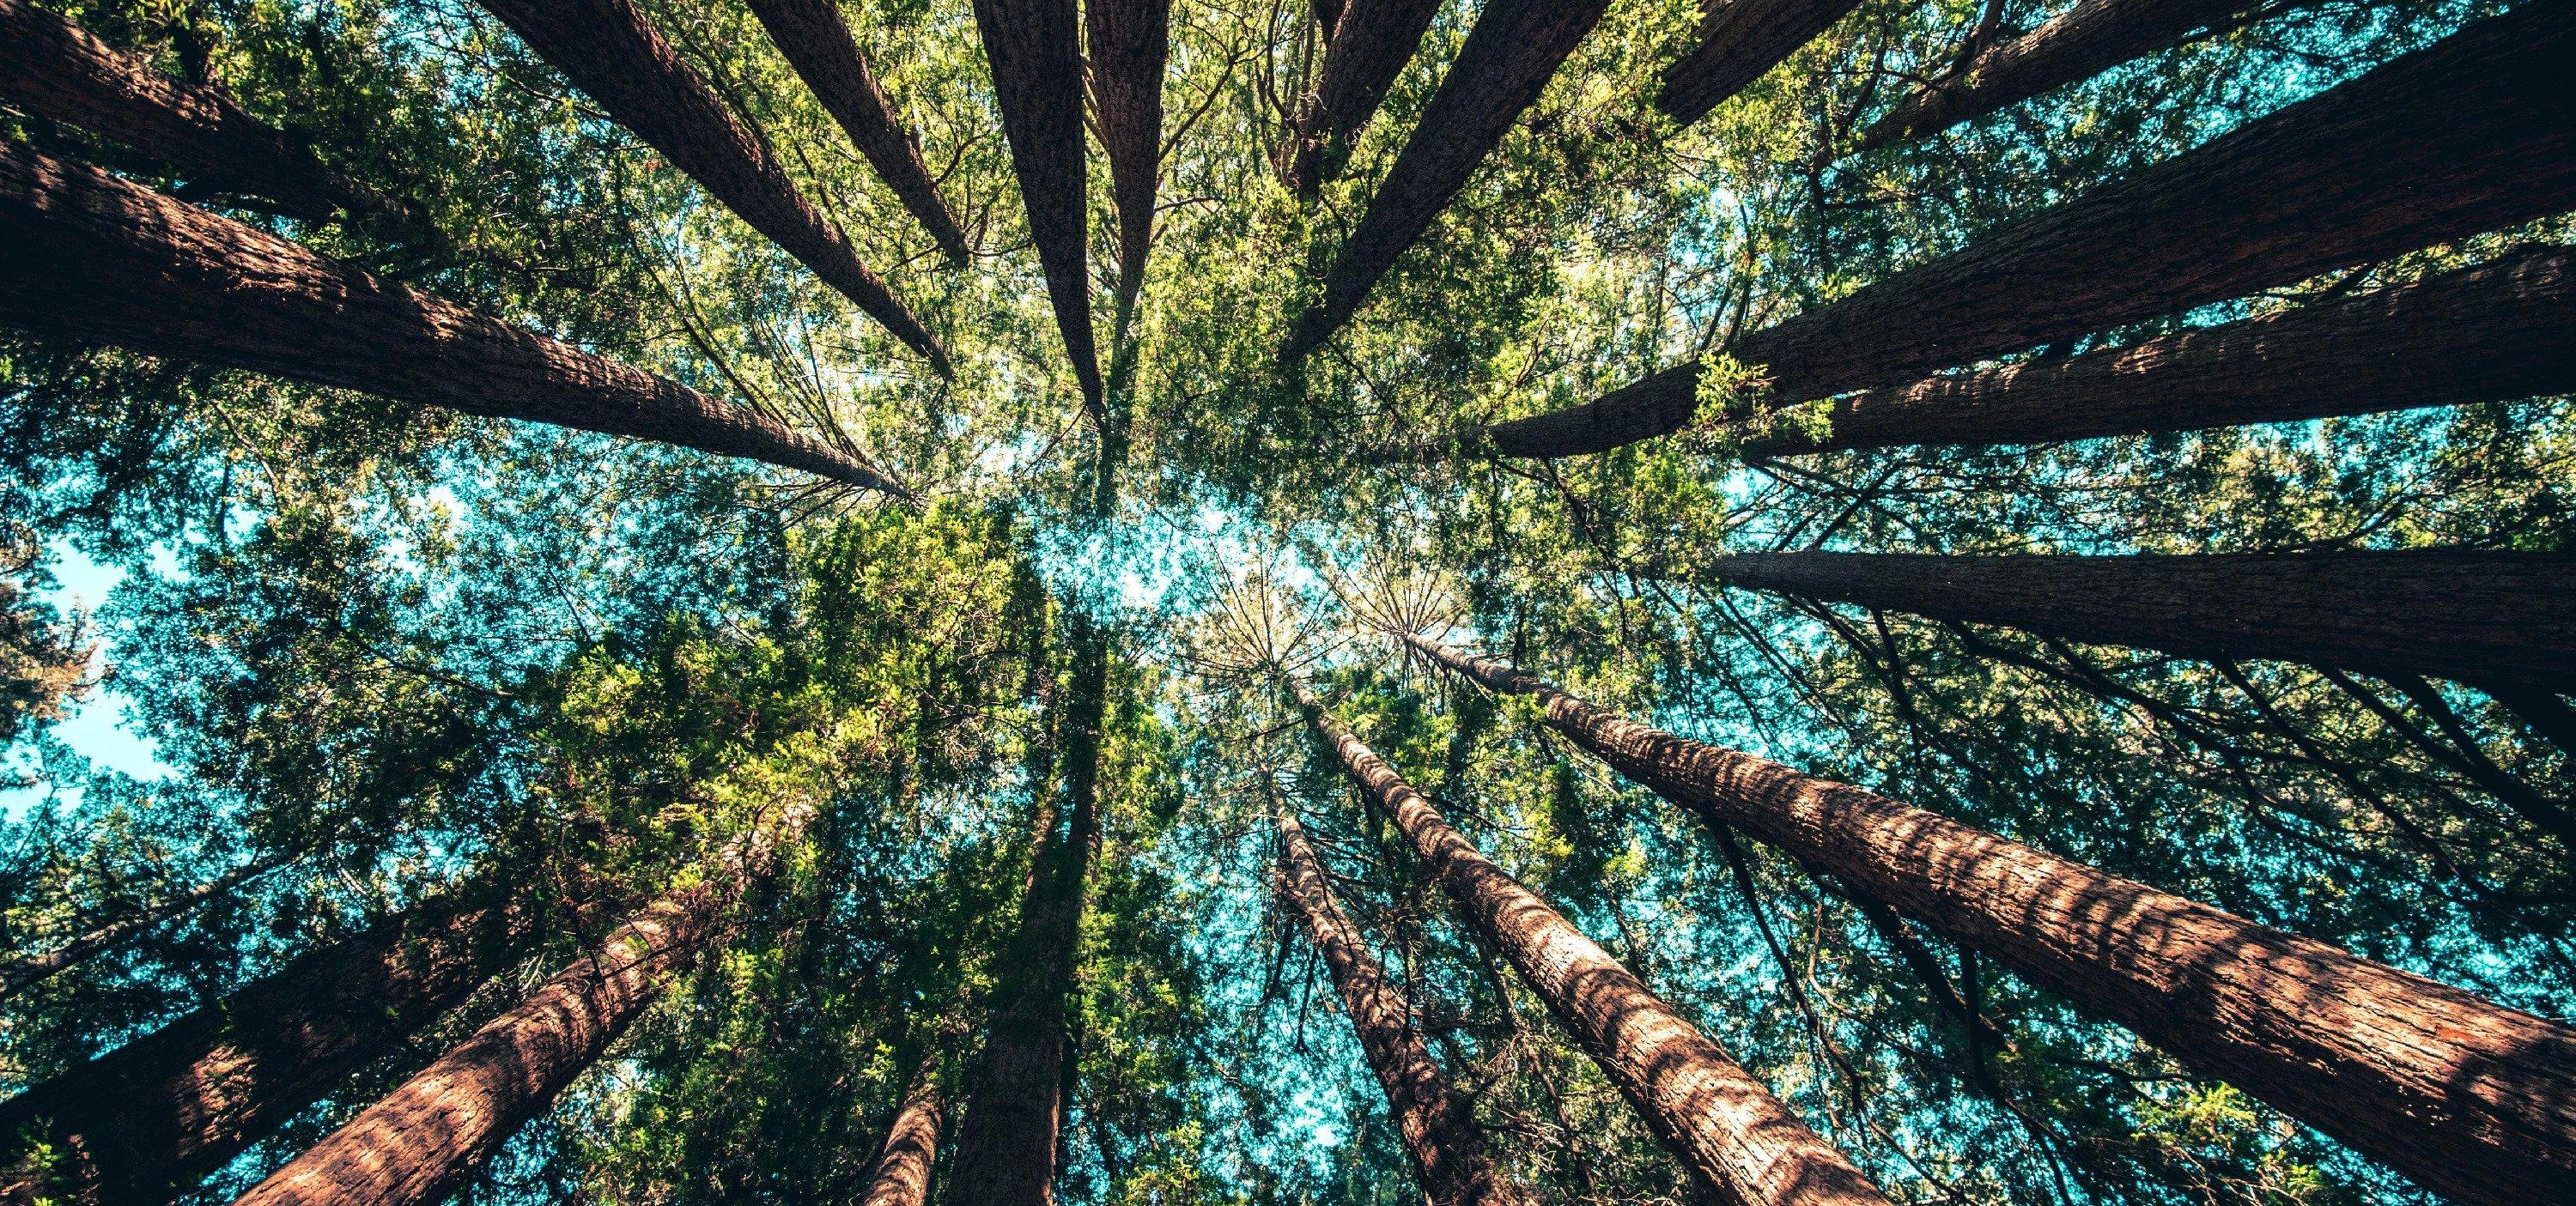 Forest-Related Solutions for Sustainable Development